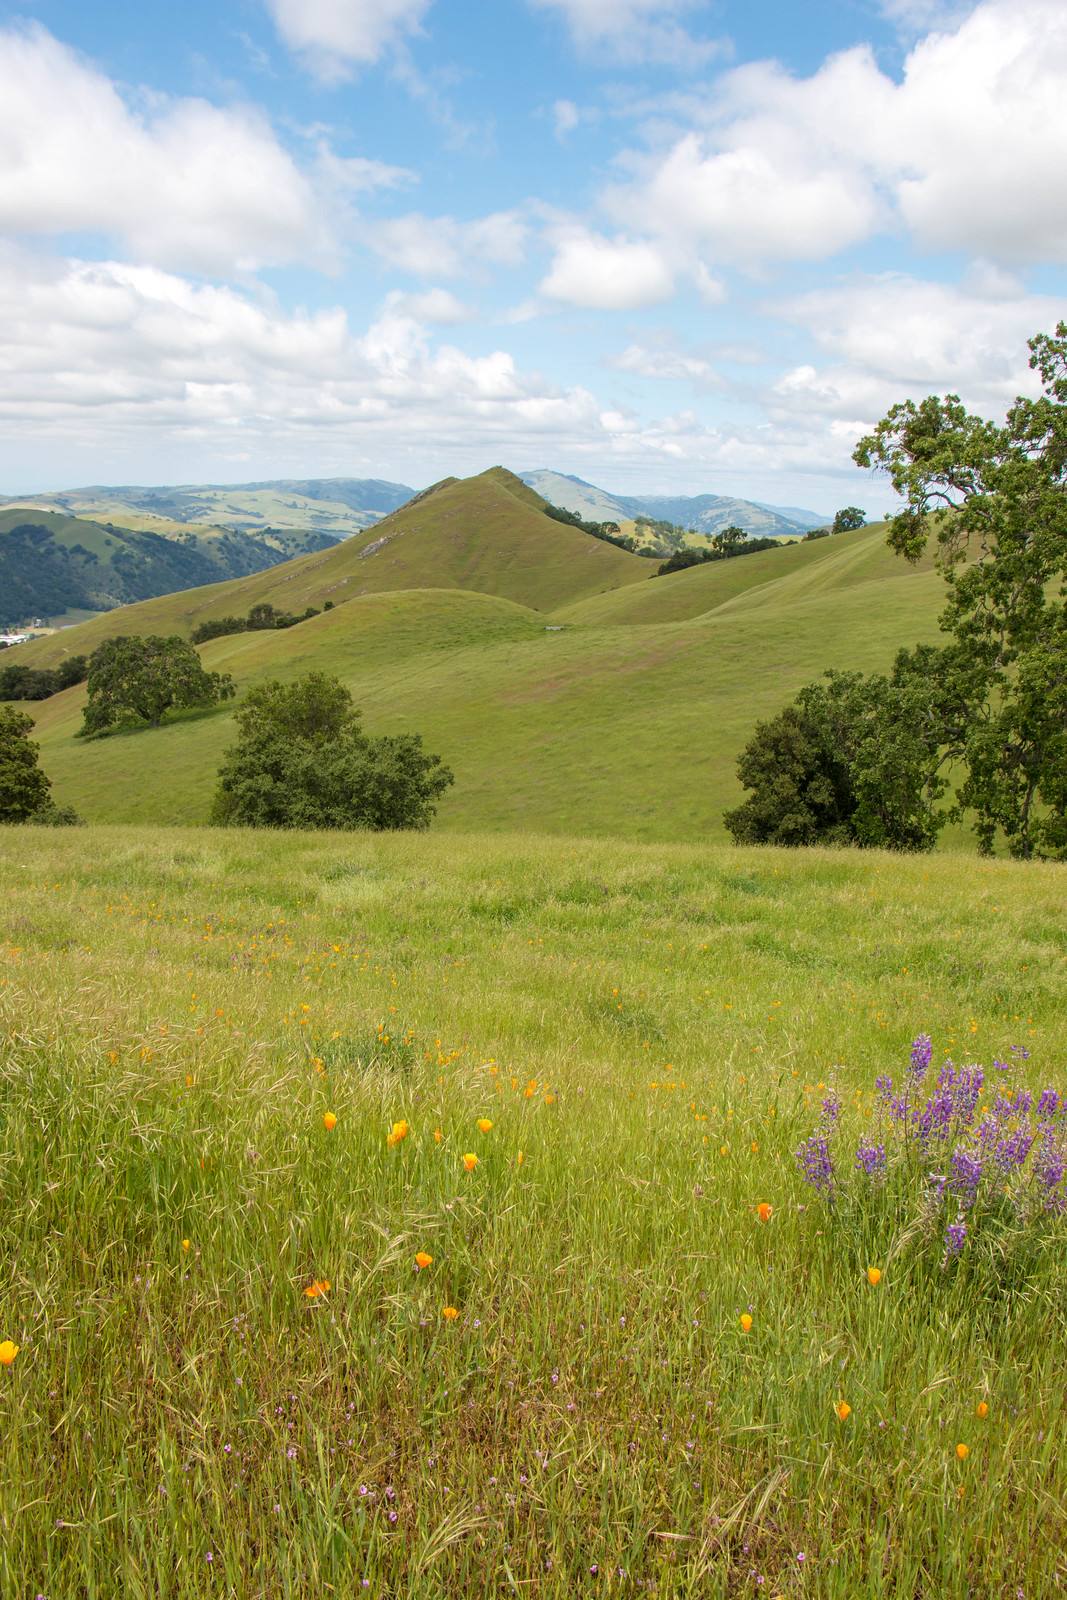 04.24. Sunol Regional Wilderness